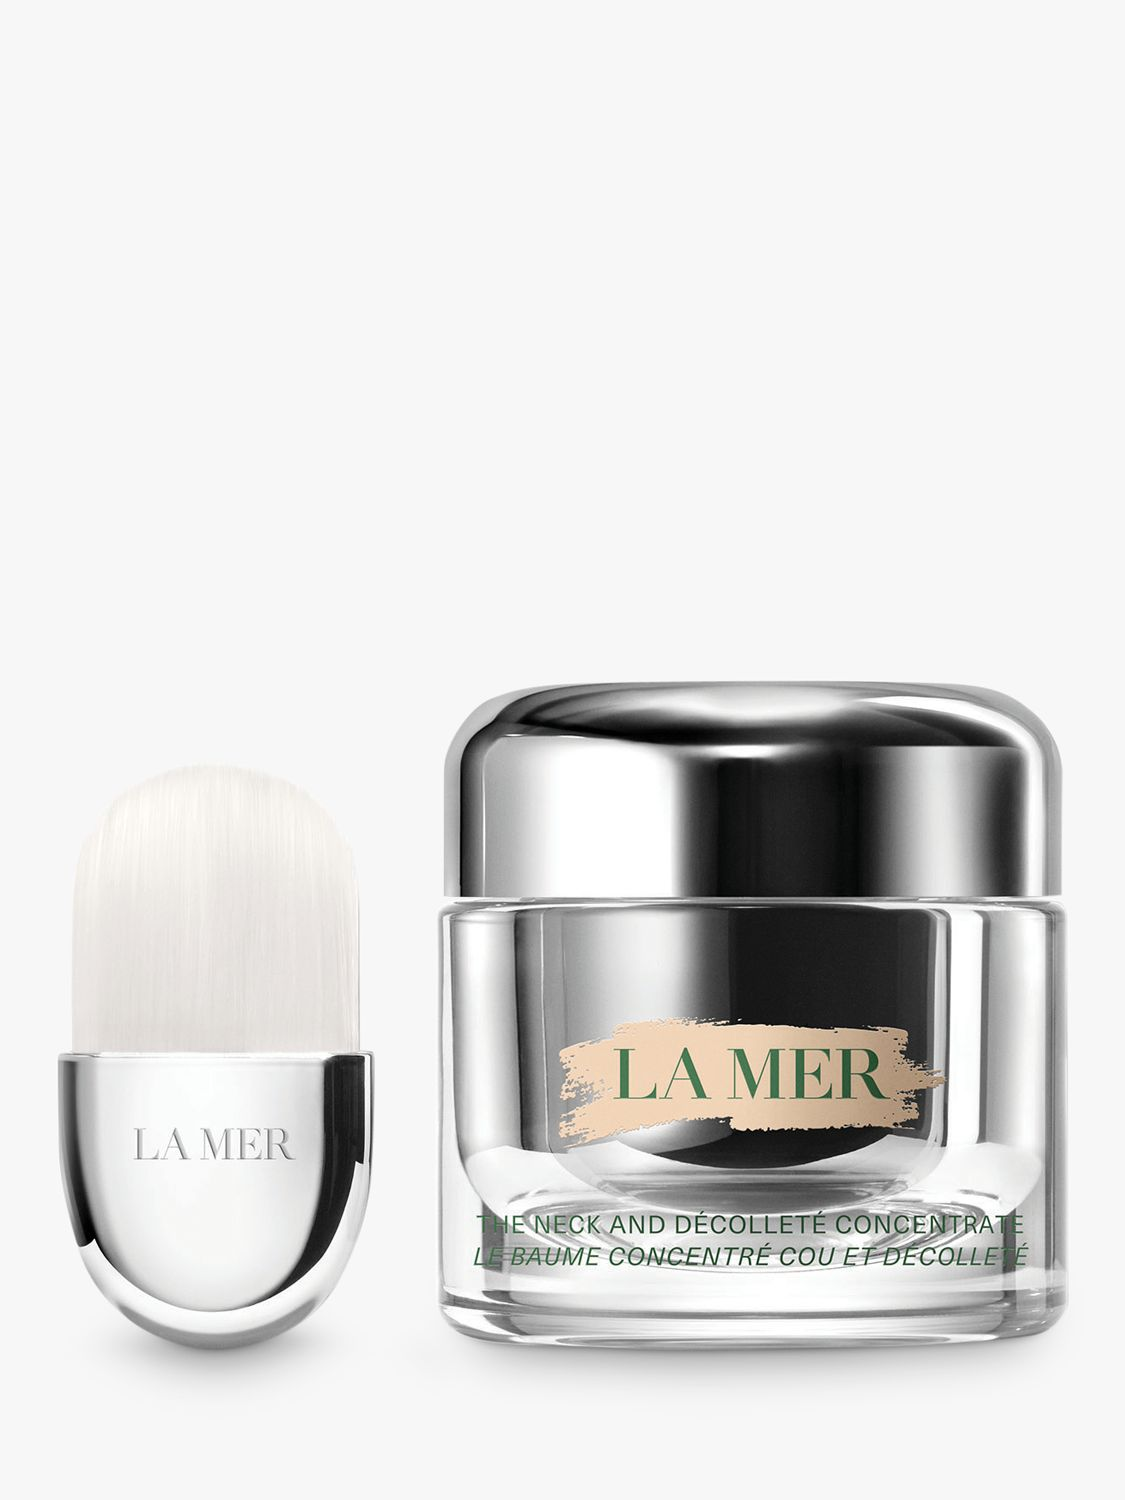 La Mer La Mer The Neck and Décolleté Concentrate, 50ml